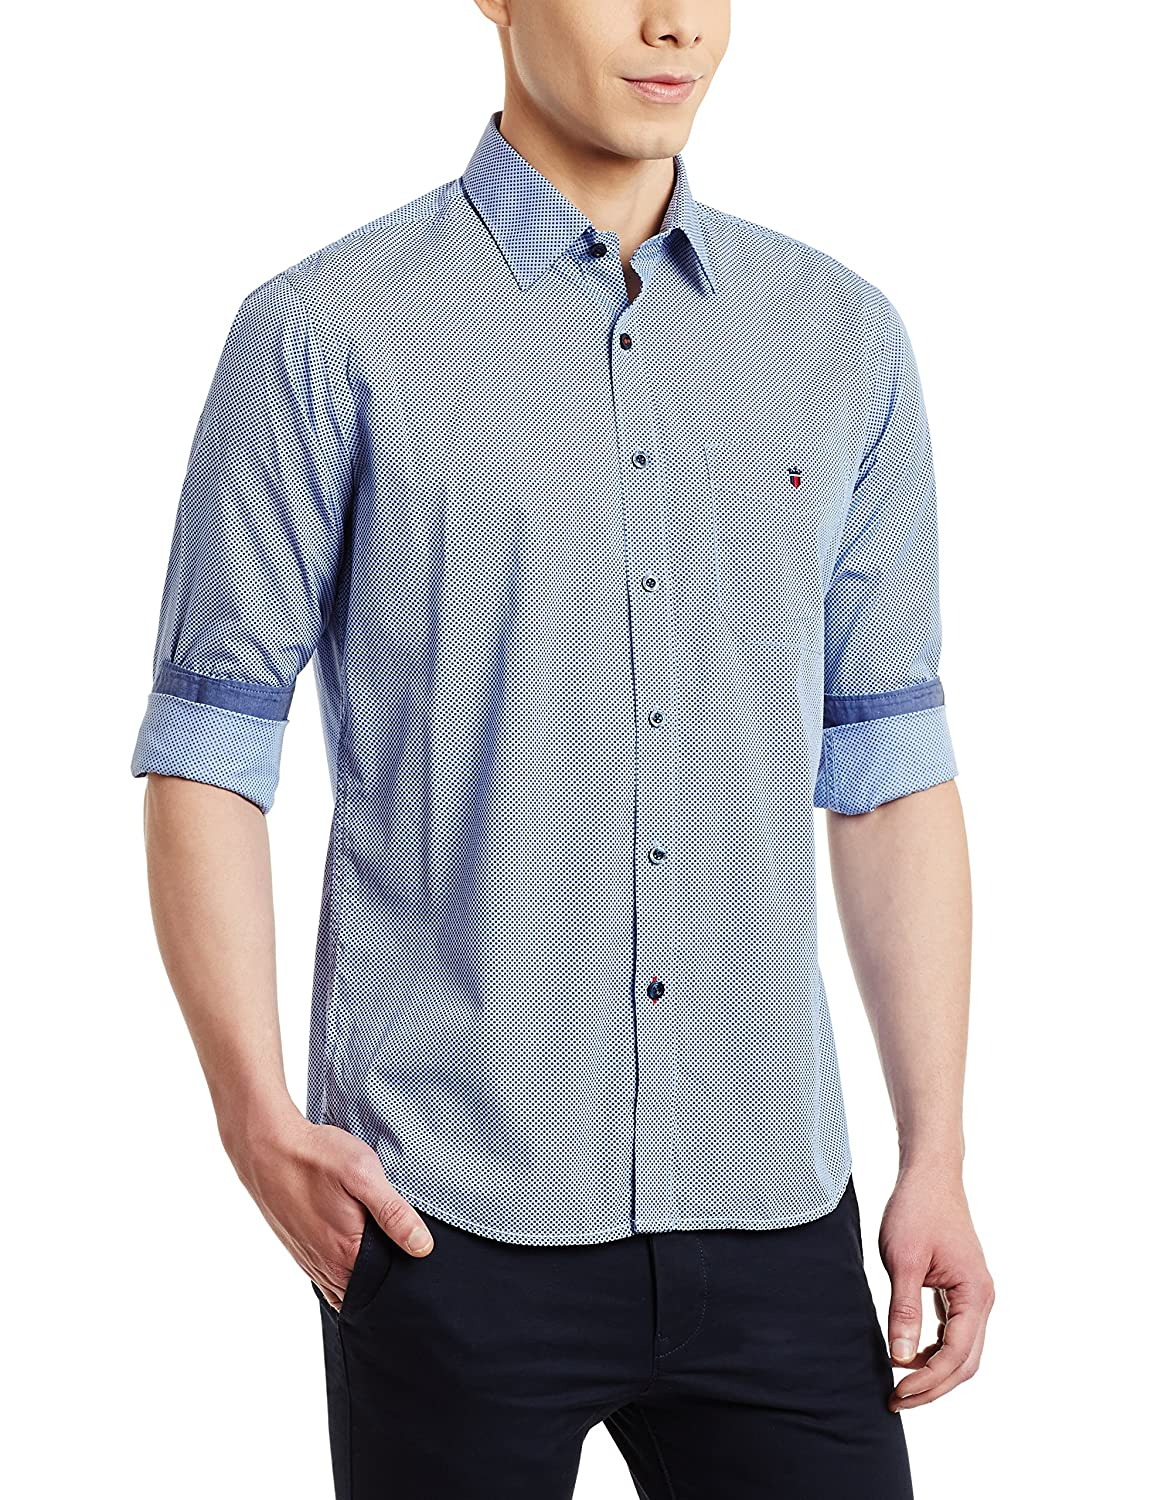 Louis Philippe Men's Casual Shirt